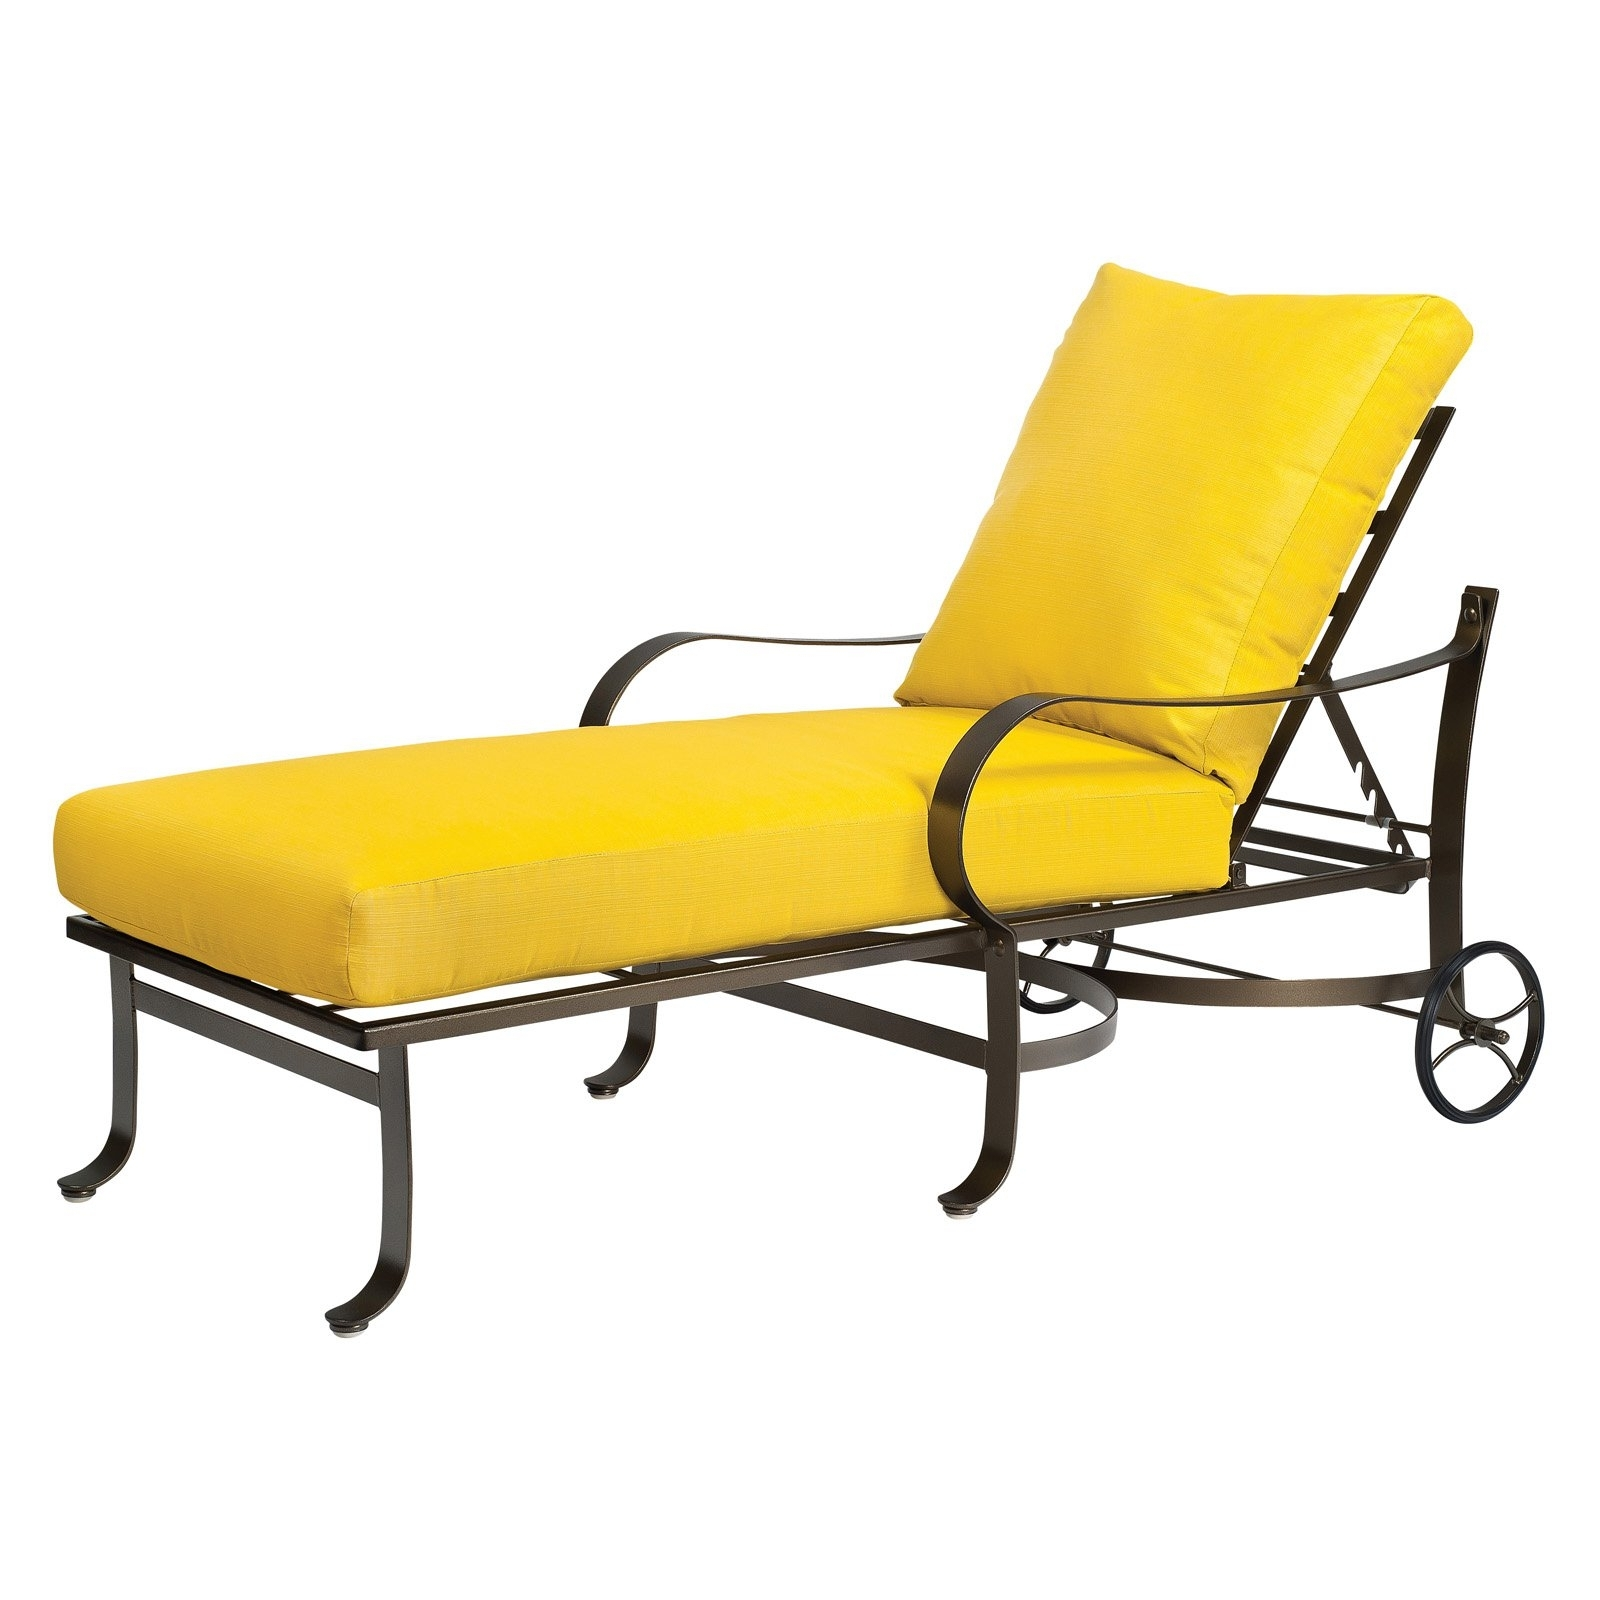 Yellow Lounge Chair Cushions • Lounge Chairs Ideas with regard to Most Popular Yellow Chaise Lounge Chairs